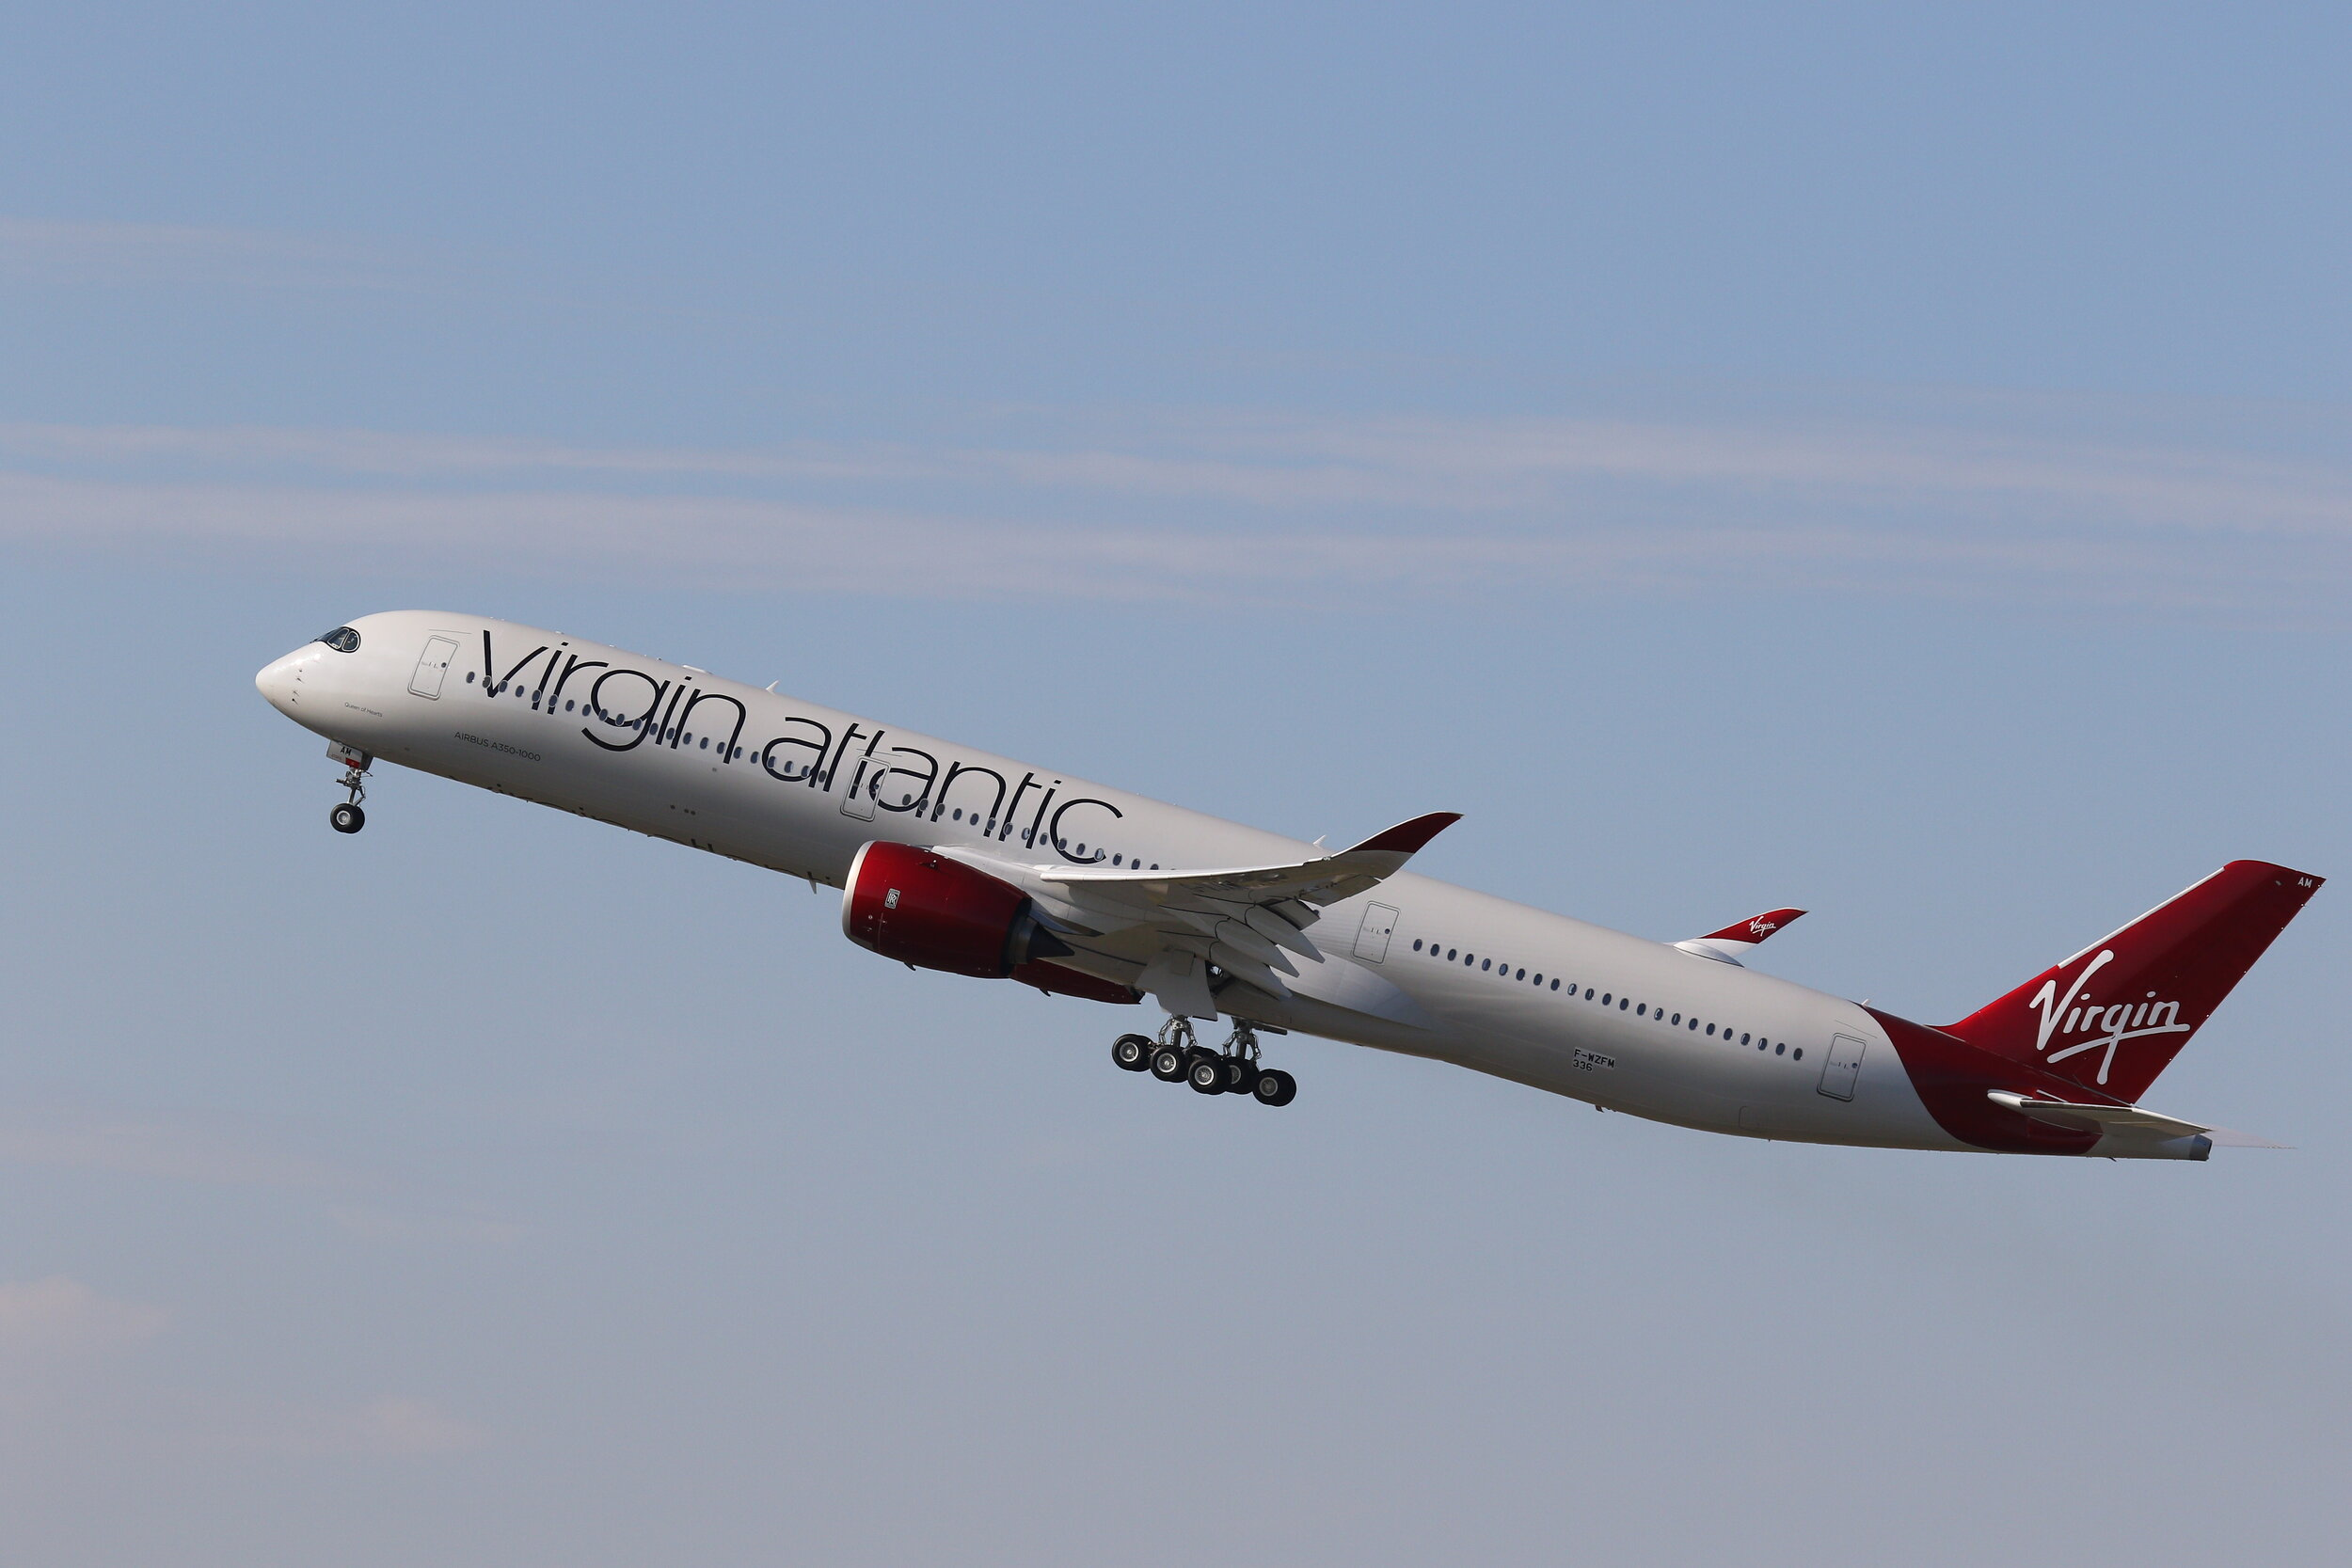 Virgin Atlantic A350-1000 F-WZFM / G-VJAM departs on a test flight from Toulouse on 20th September. Photo: Maurice Kime